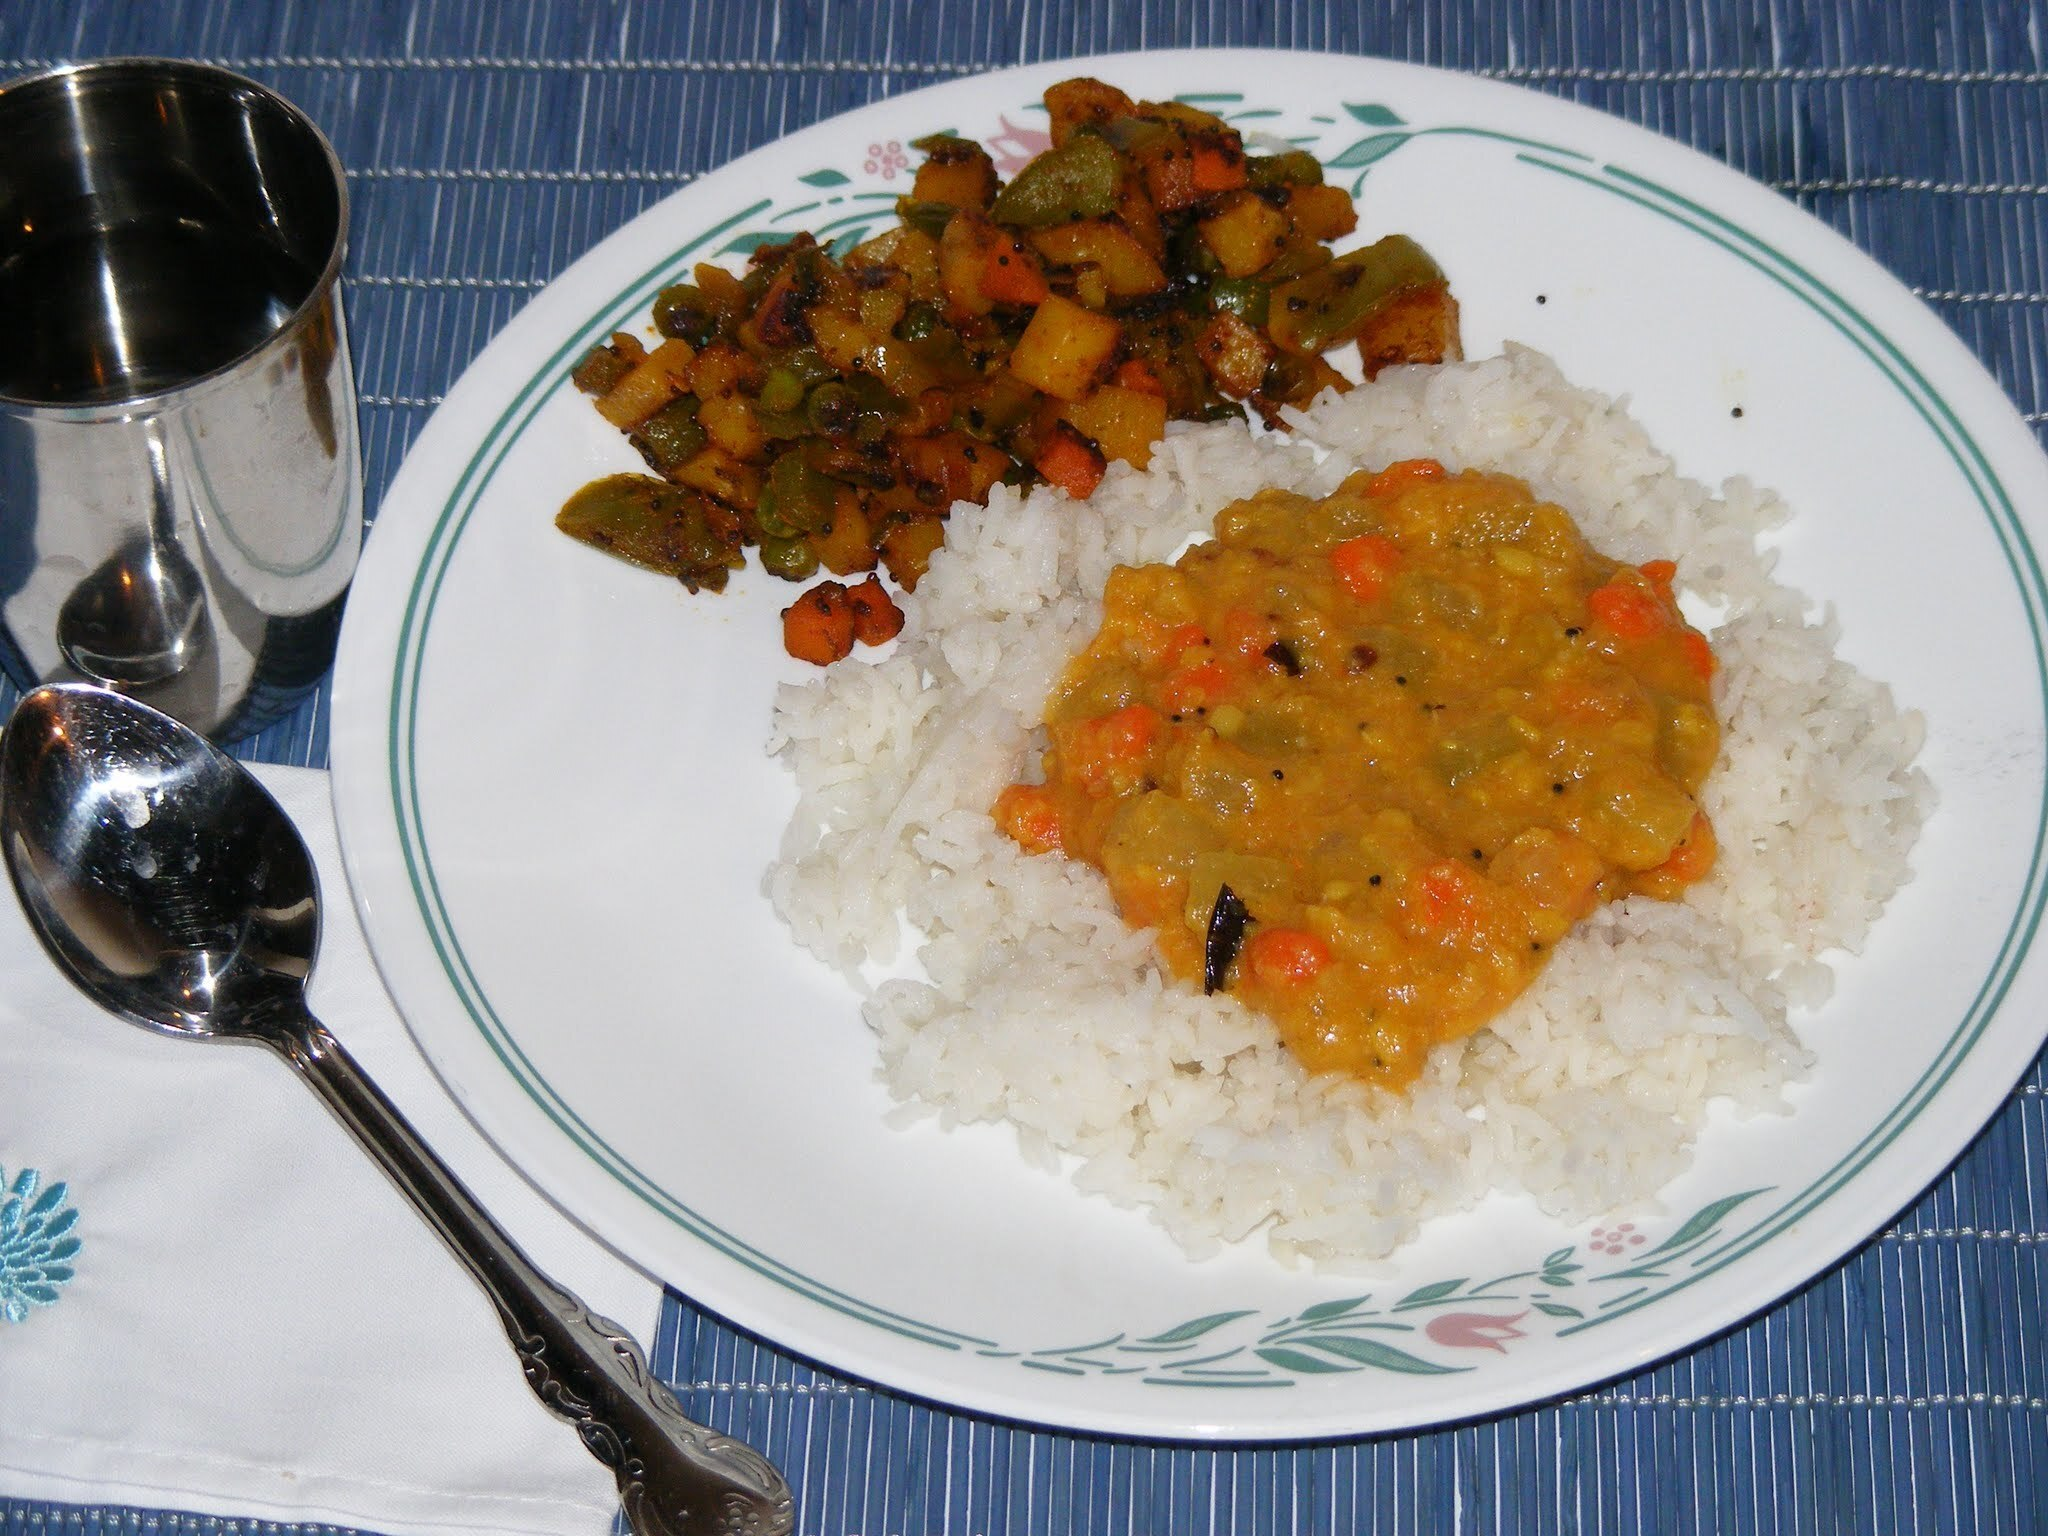 Chow-chow Carrot Kootu (Chayote Squash and Carrot simmered in coconut based stew)